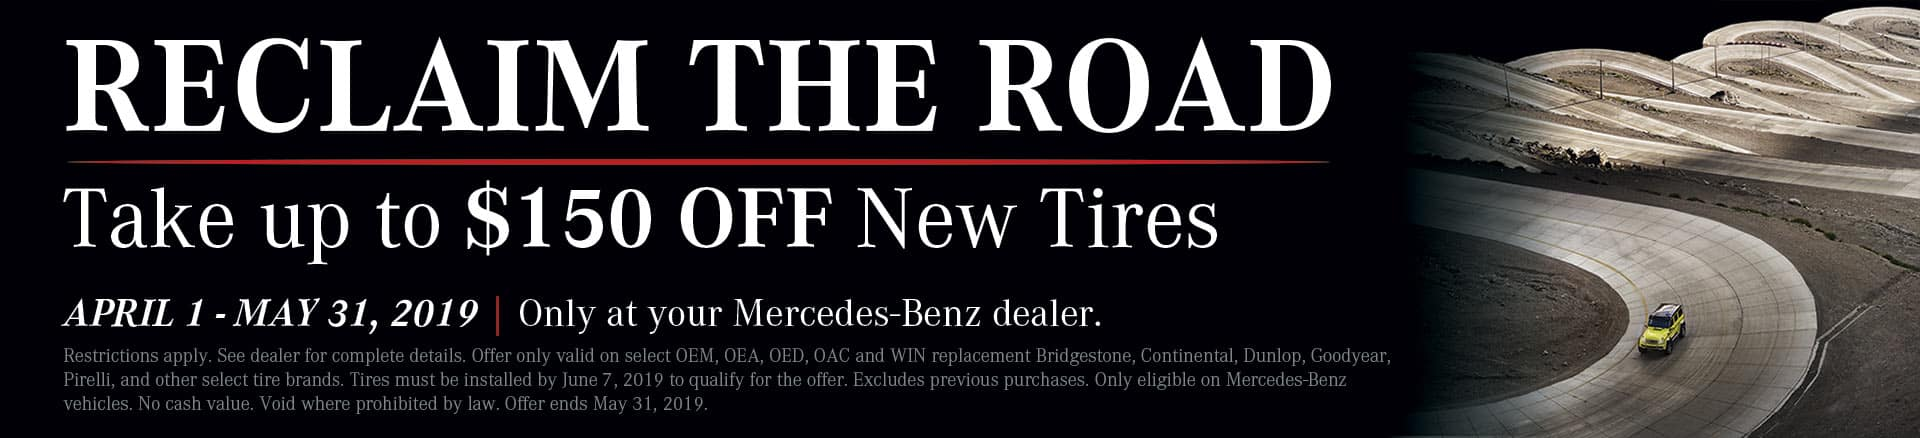 Reclaim the Road - Tire Offer